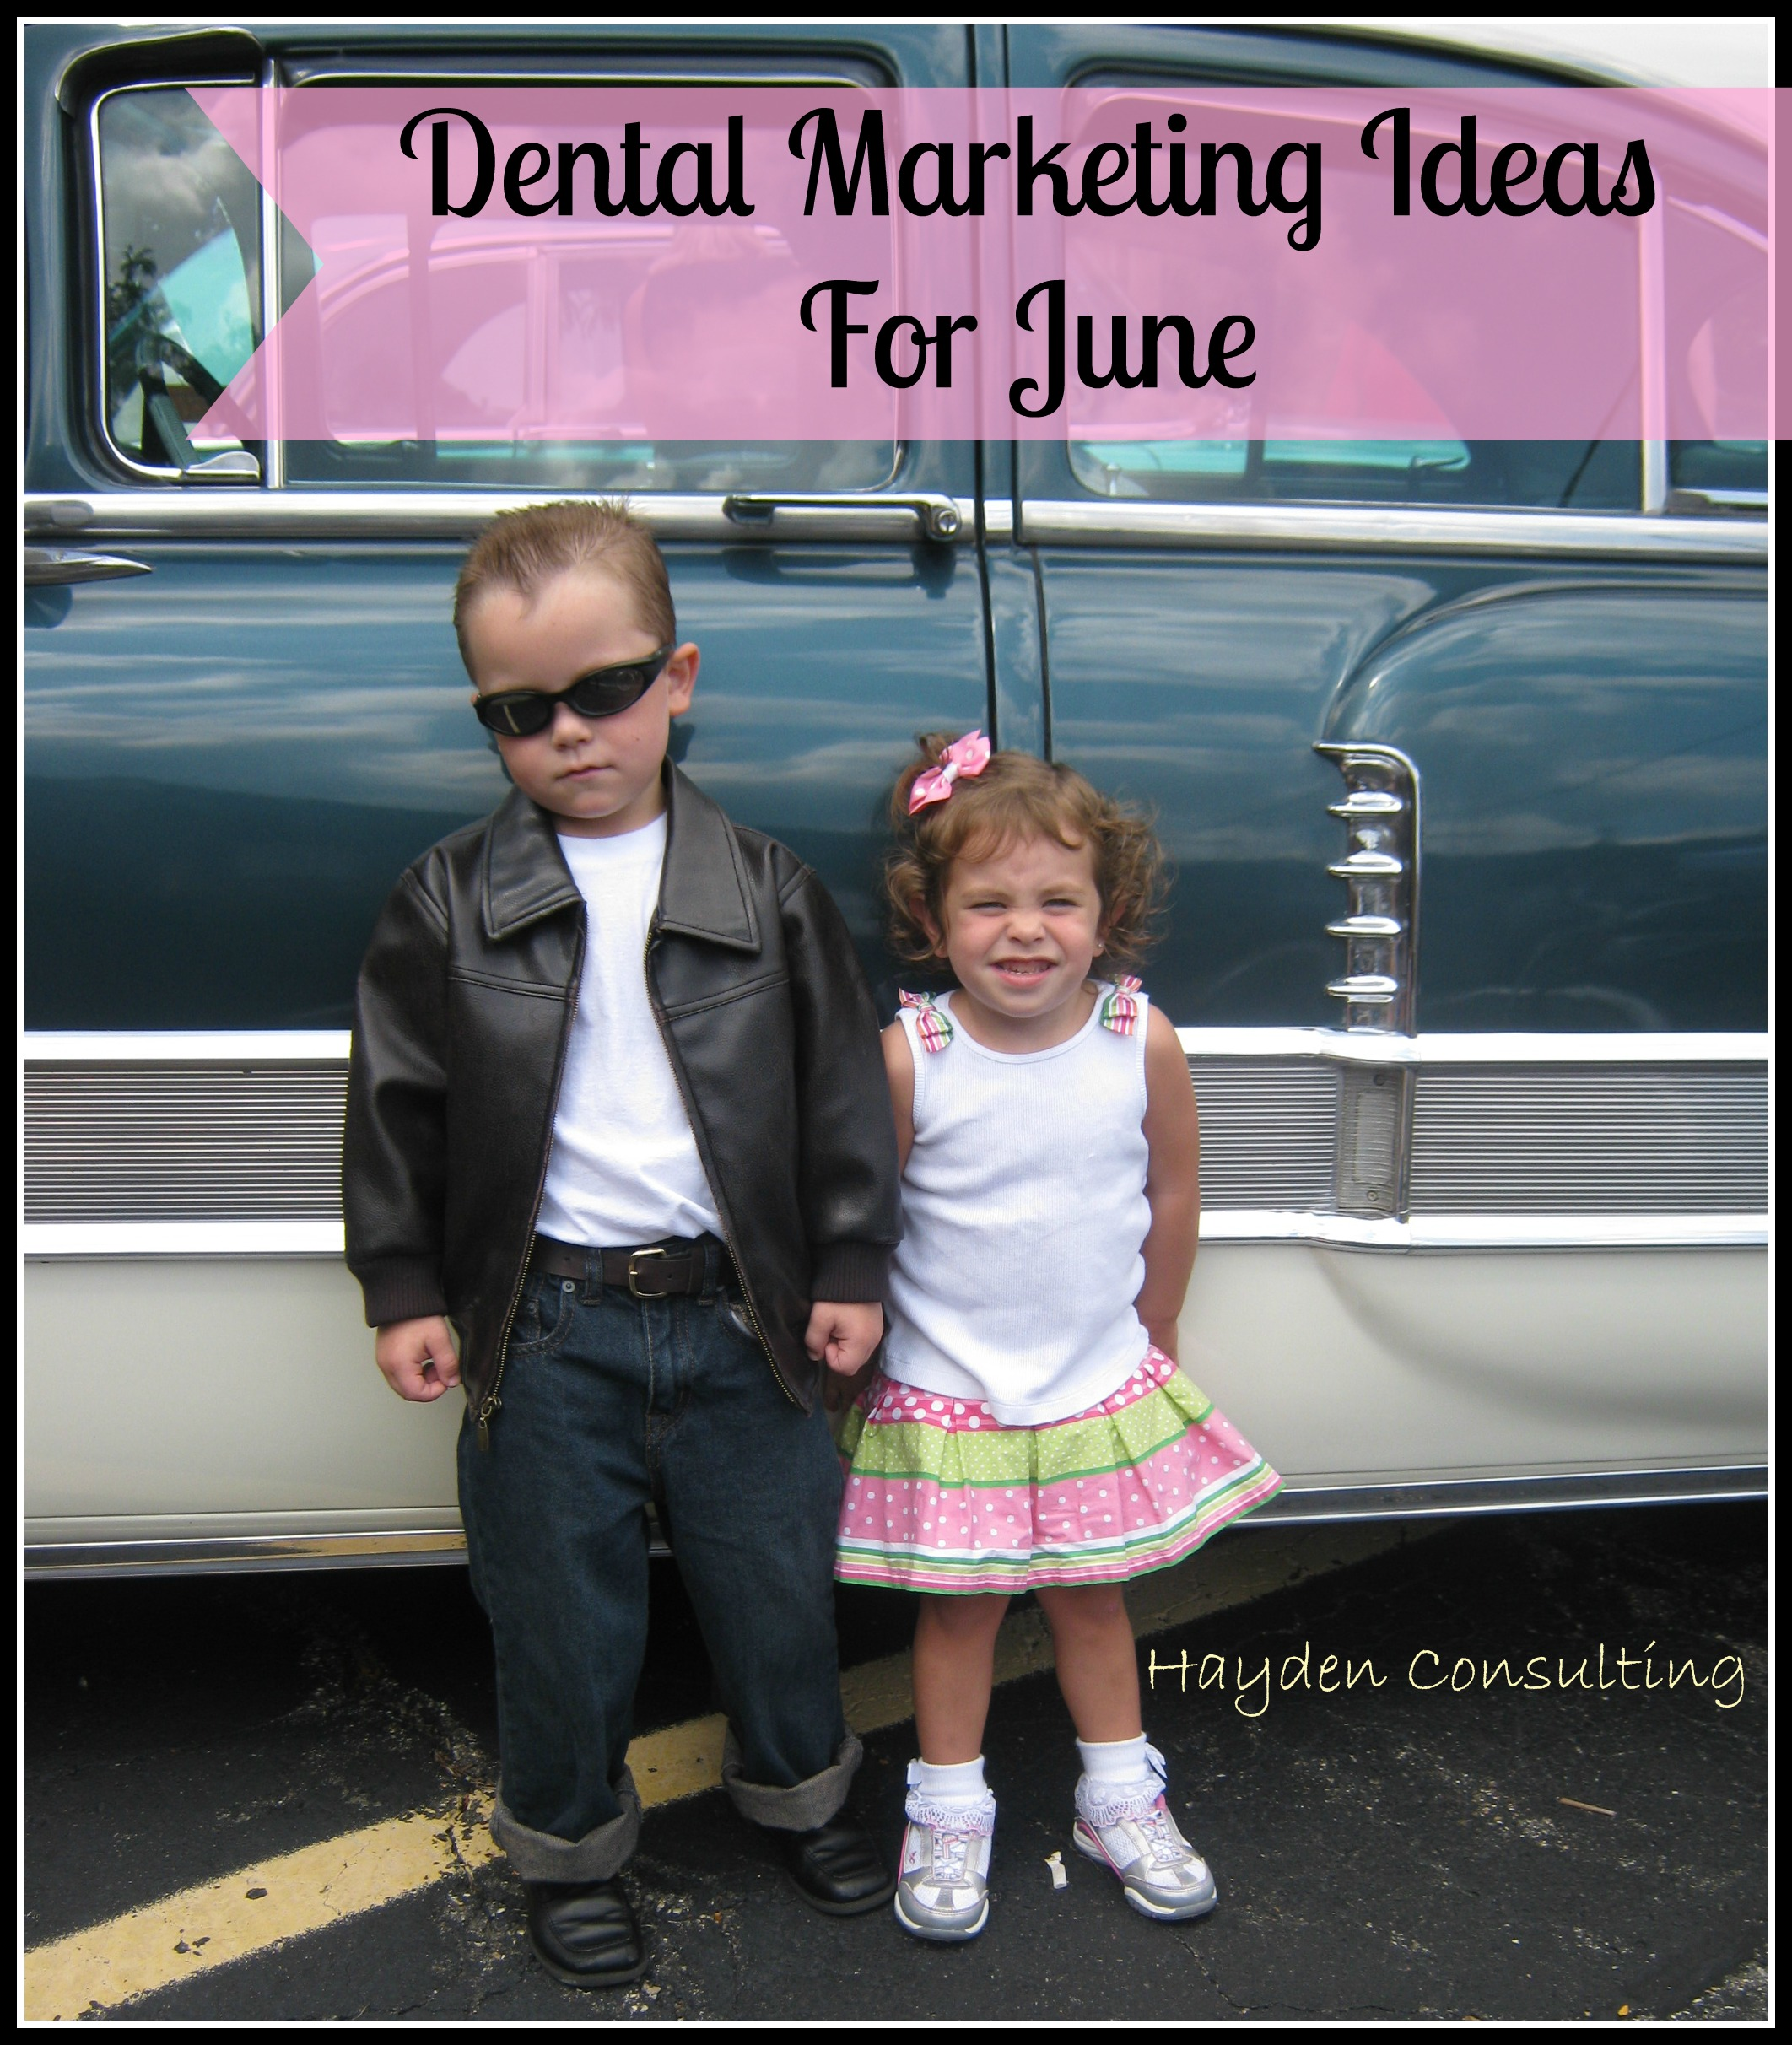 June dental marketing ideas – Hayden Consulting – Where Your